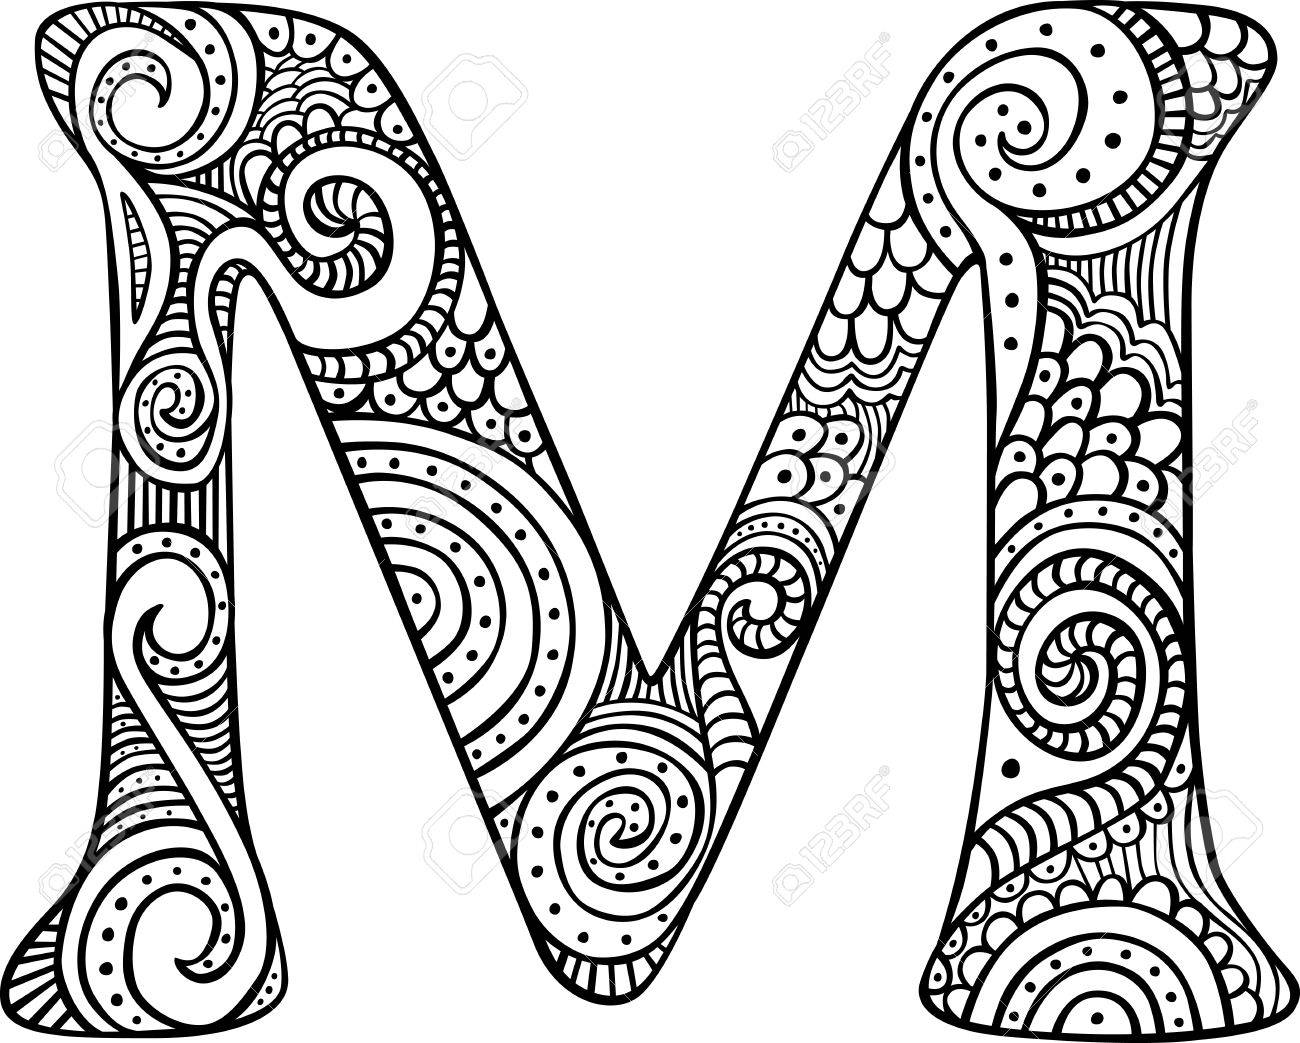 1300x1043 Hand Drawn Capital Letter M In Black